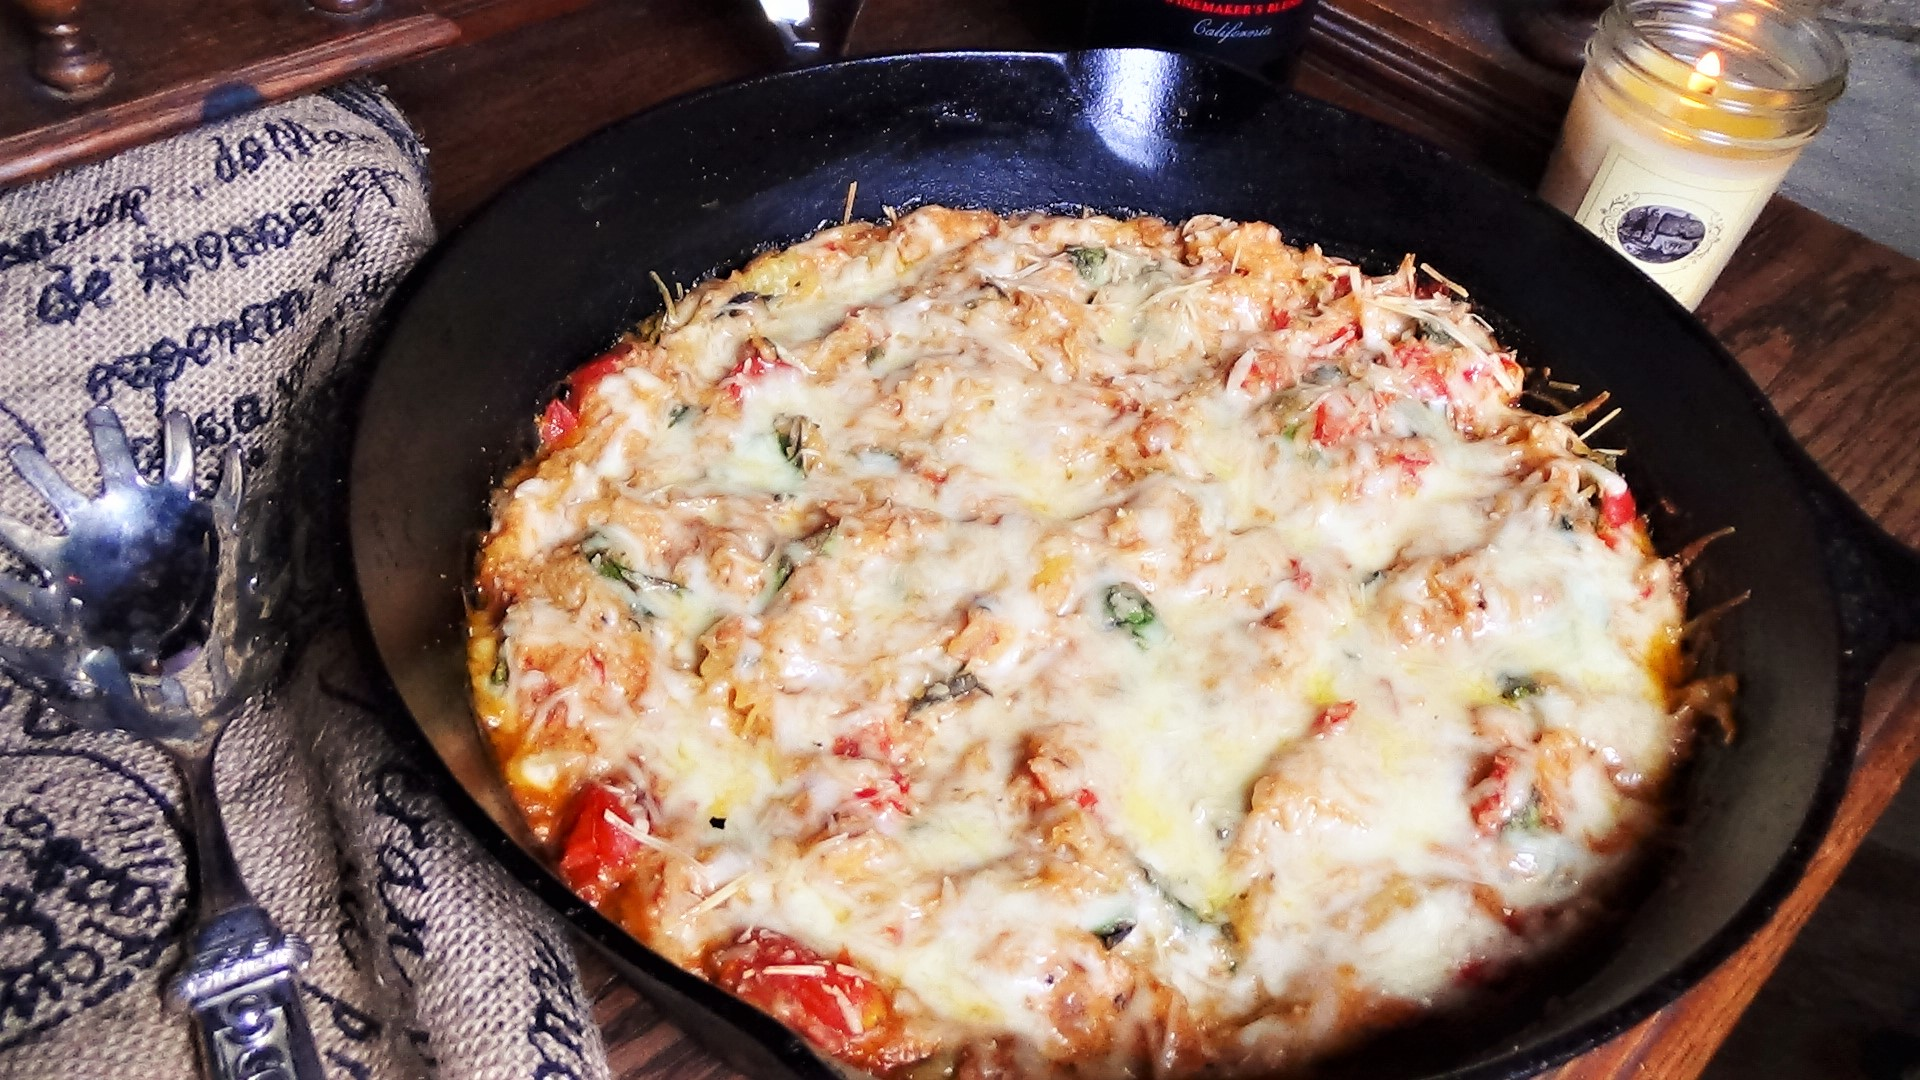 Spaghetti Squash with fresh tomatoes, spinach and ricotta